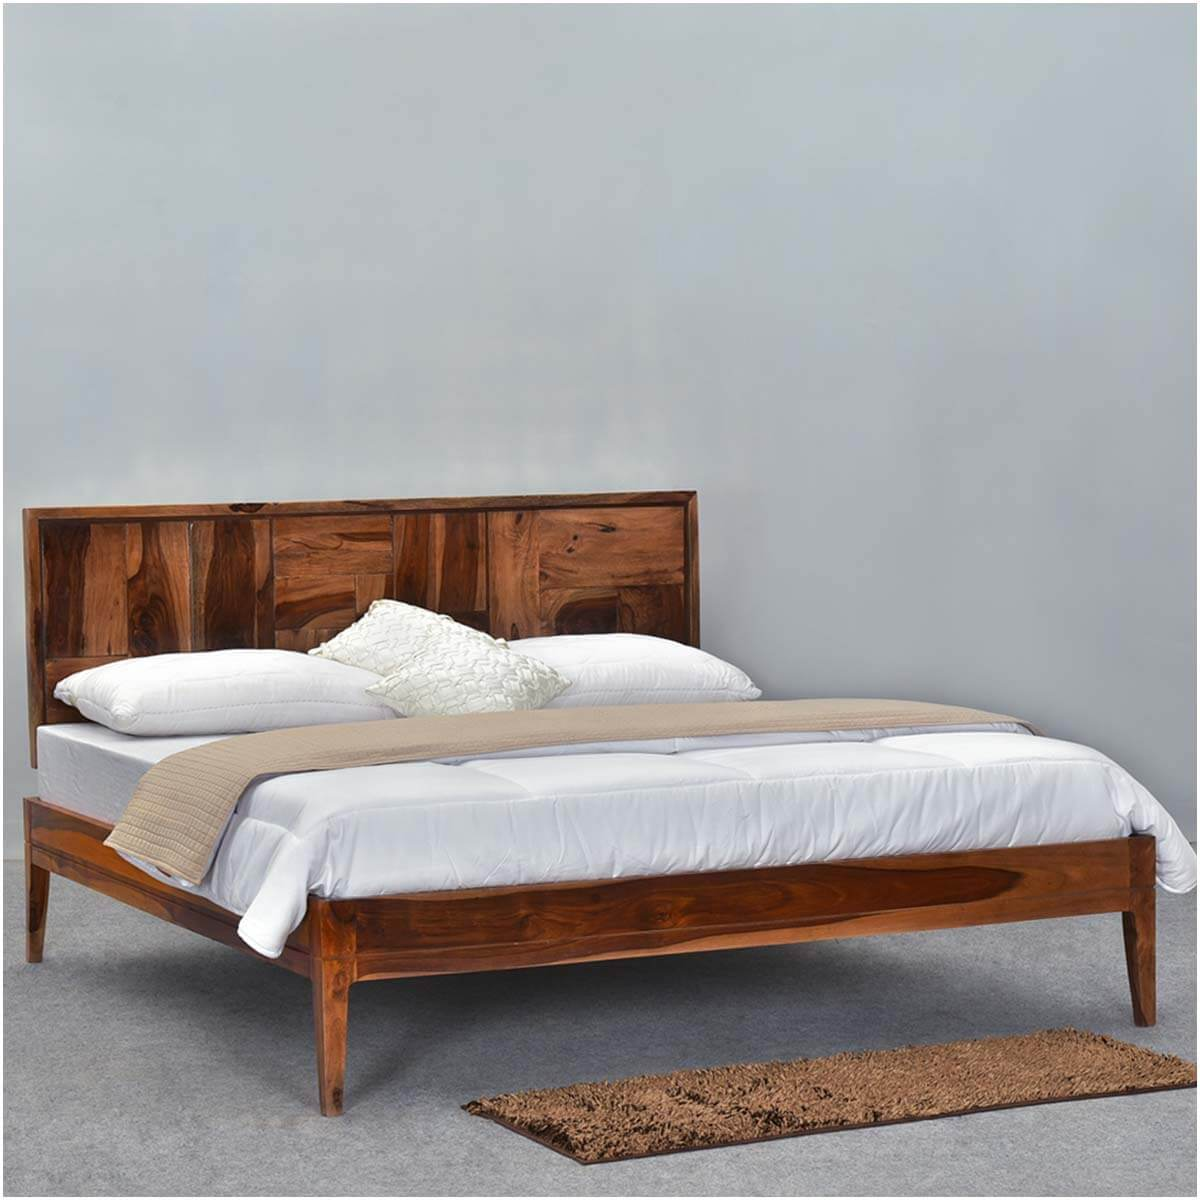 sunrise modern pioneer solid wood platform bed frame w headboard